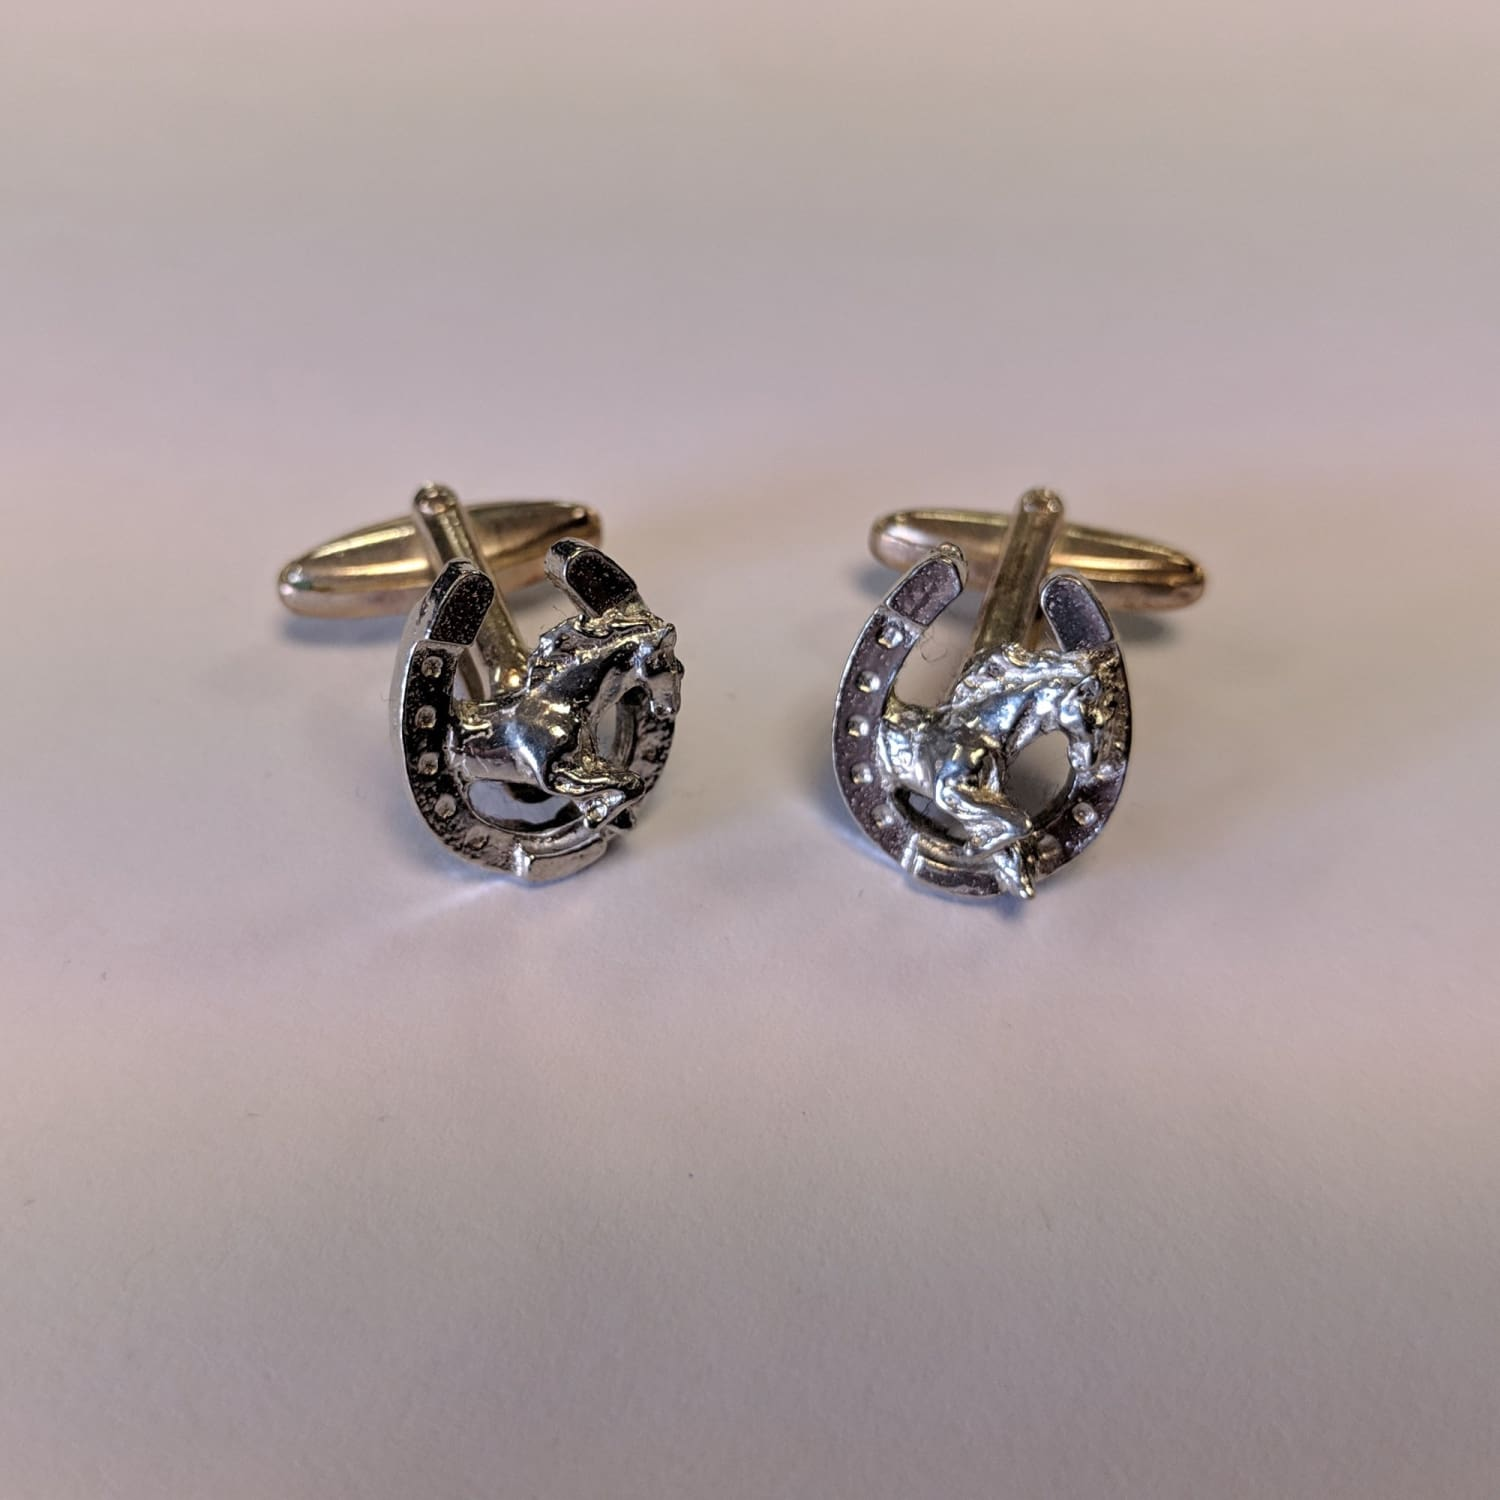 Cufflinks - Horseshoe 1